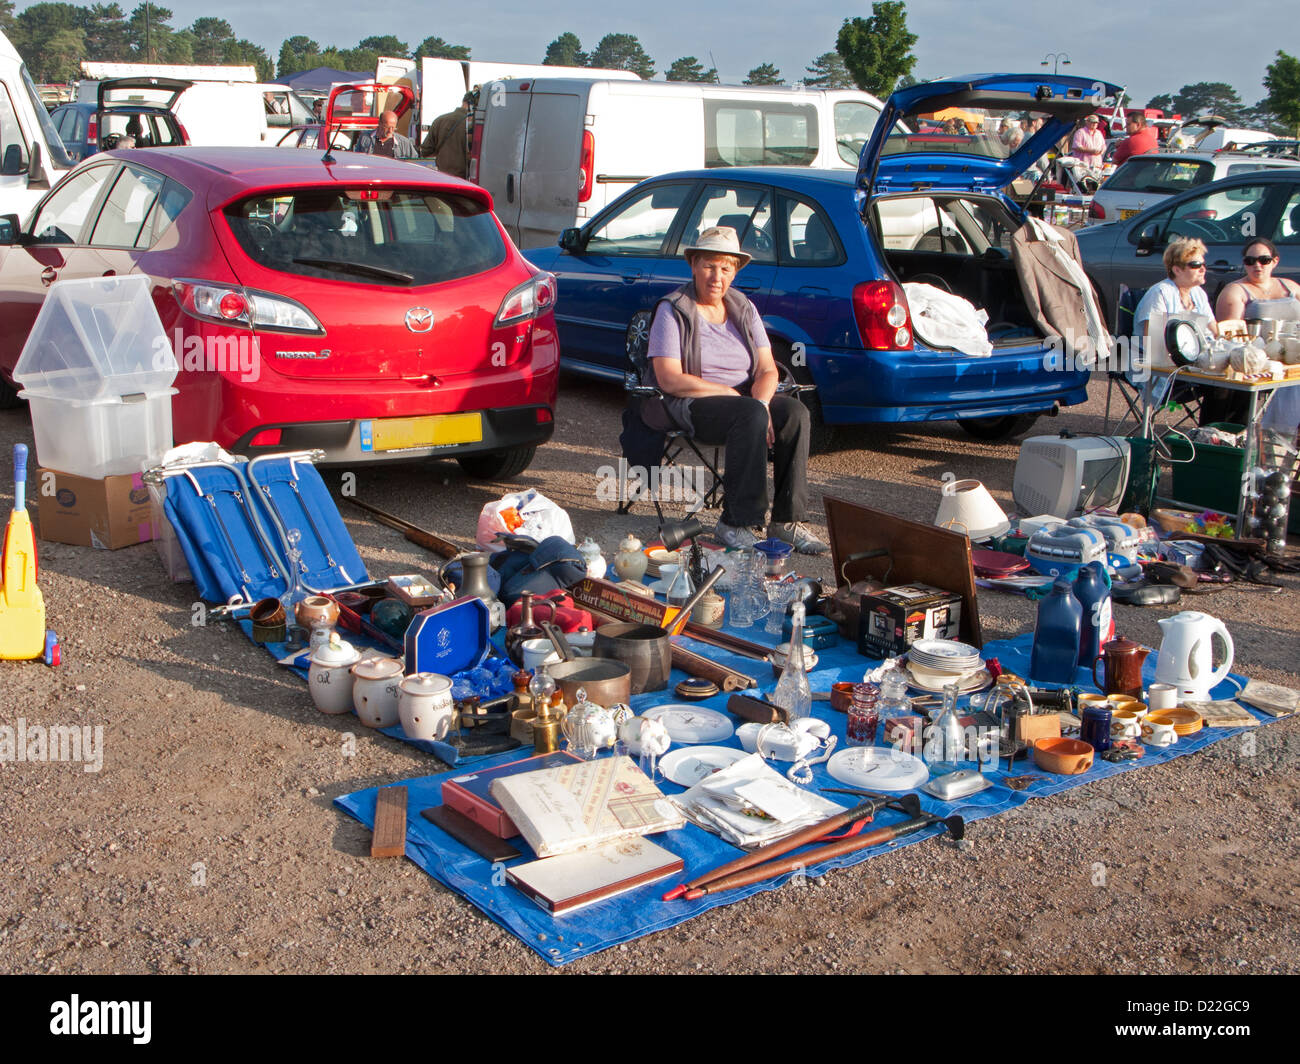 Car Boot Sale at Cheltenhm in Gloucestershire, England - Stock Image